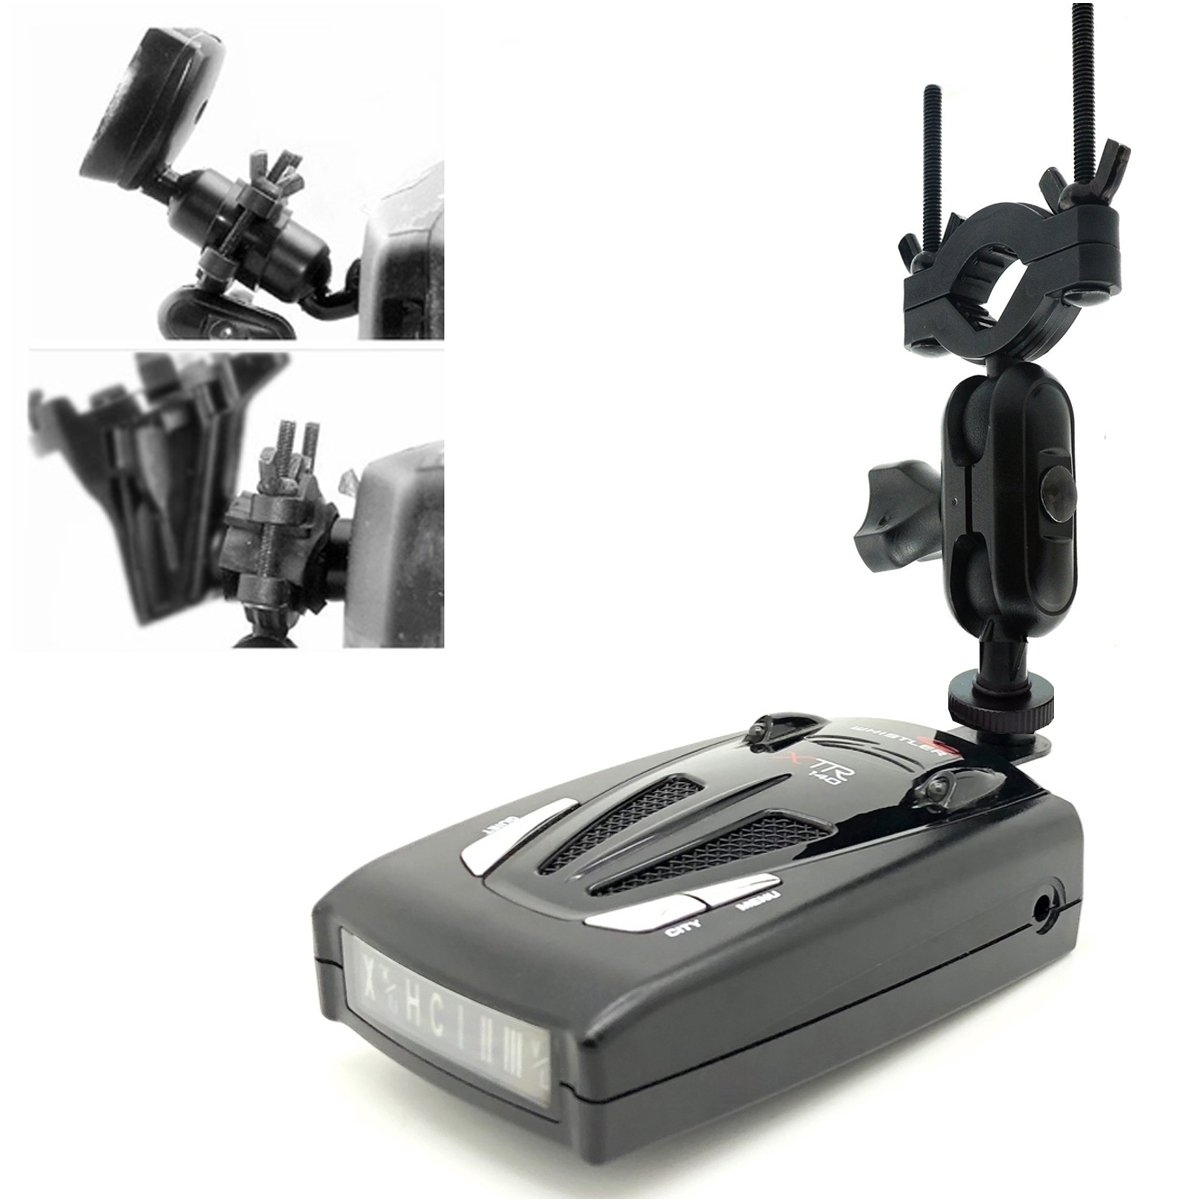 AccessoryBasics Car Rearview Mirror Radar Detector Mount Holder for All Whistler Radar Detector (CR65 CR 70 CR75 CR80 CR85 CR90 CR93 Pro DE17xx All XTR) Require min.of 1''inch stem space to setup by ChargerCity (Image #2)